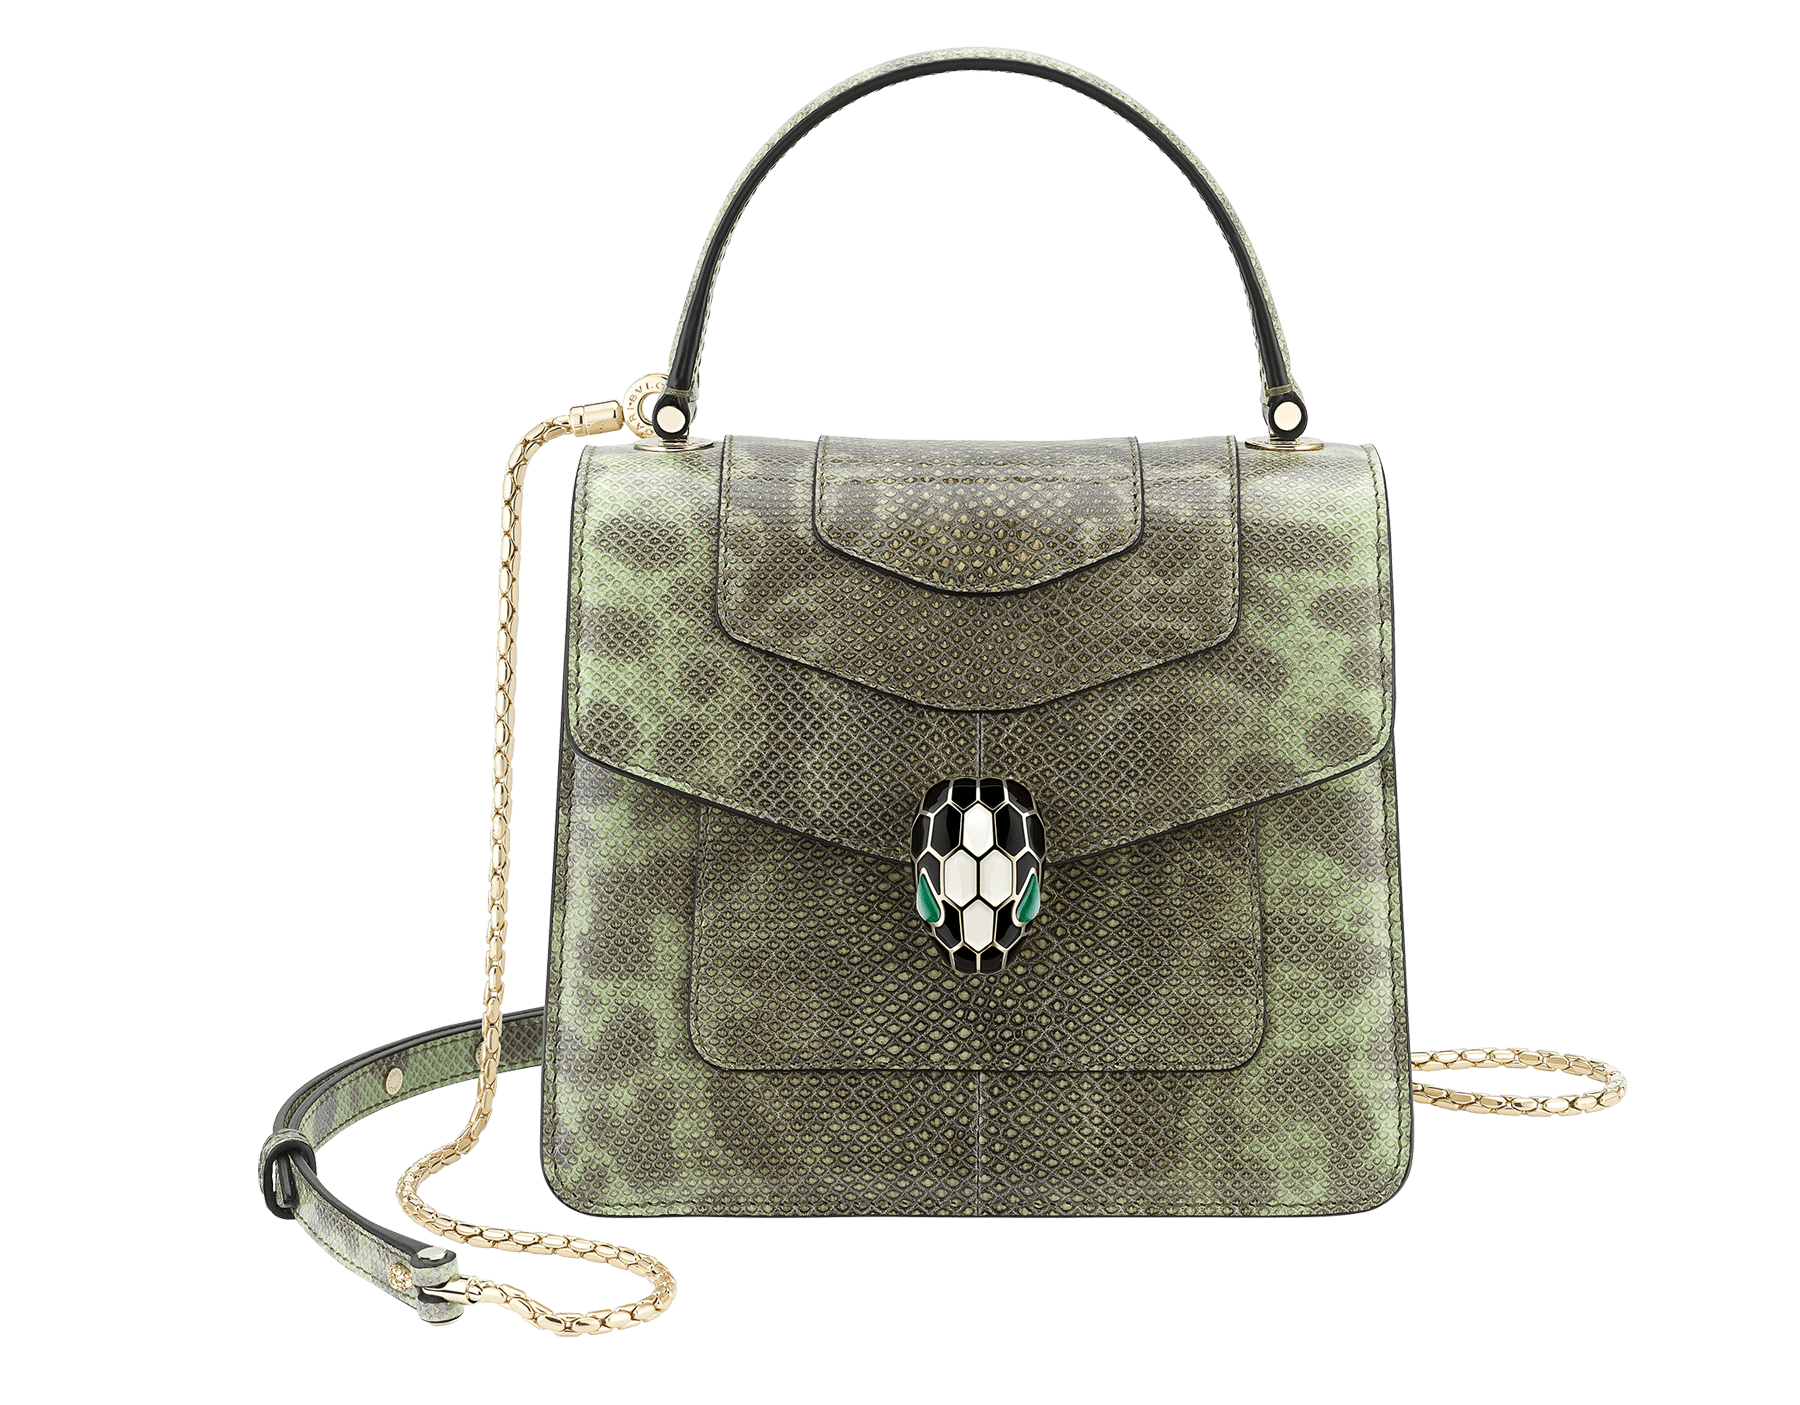 """Serpenti Forever "" crossbody bag in mint shiny karung skin. Iconic snakehead closure in light gold plated brass enriched with black and white enamel, and green malachite eyes. 752-SKb image 1"